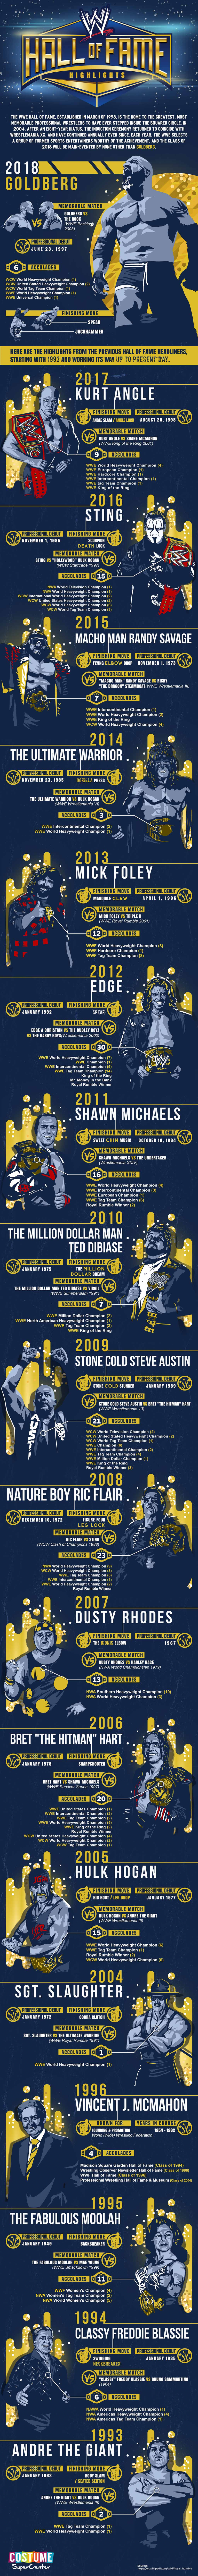 WWE Hall of Fame Headliners Infographic